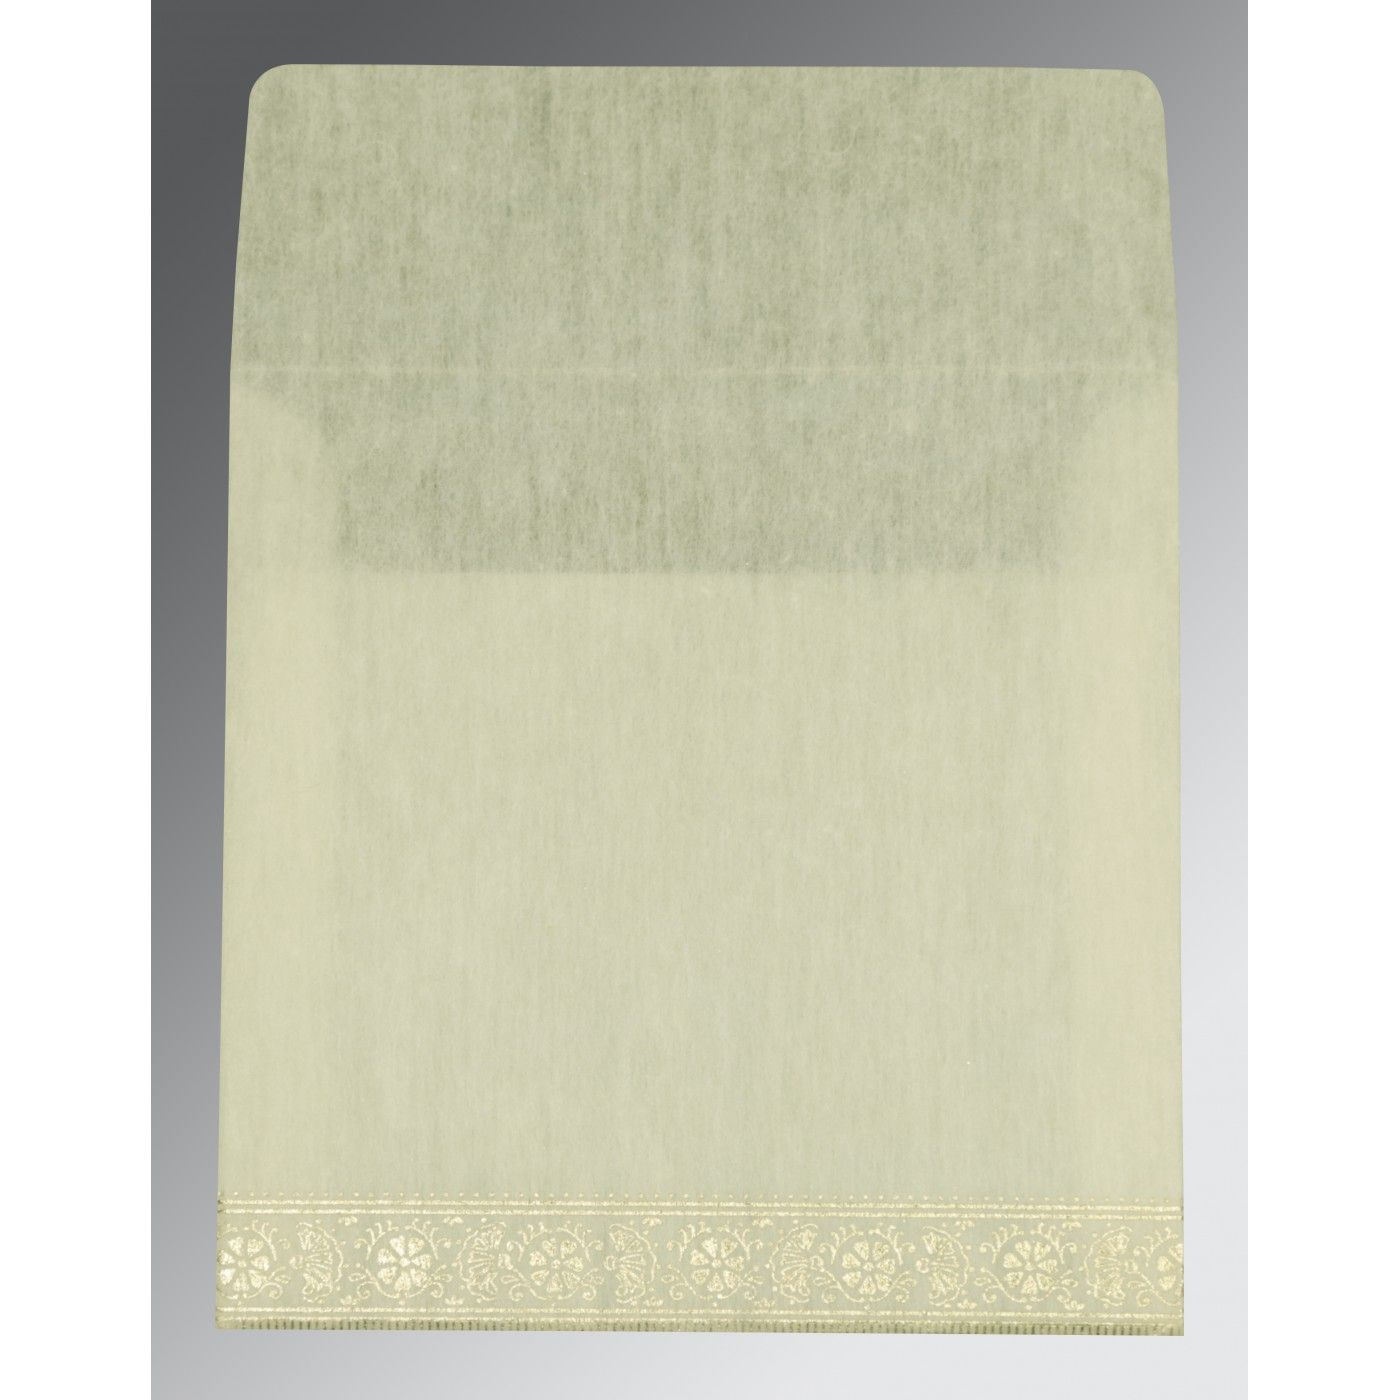 IVORY WOOLY FOIL STAMPED WEDDING CARD : CG-8242M - IndianWeddingCards